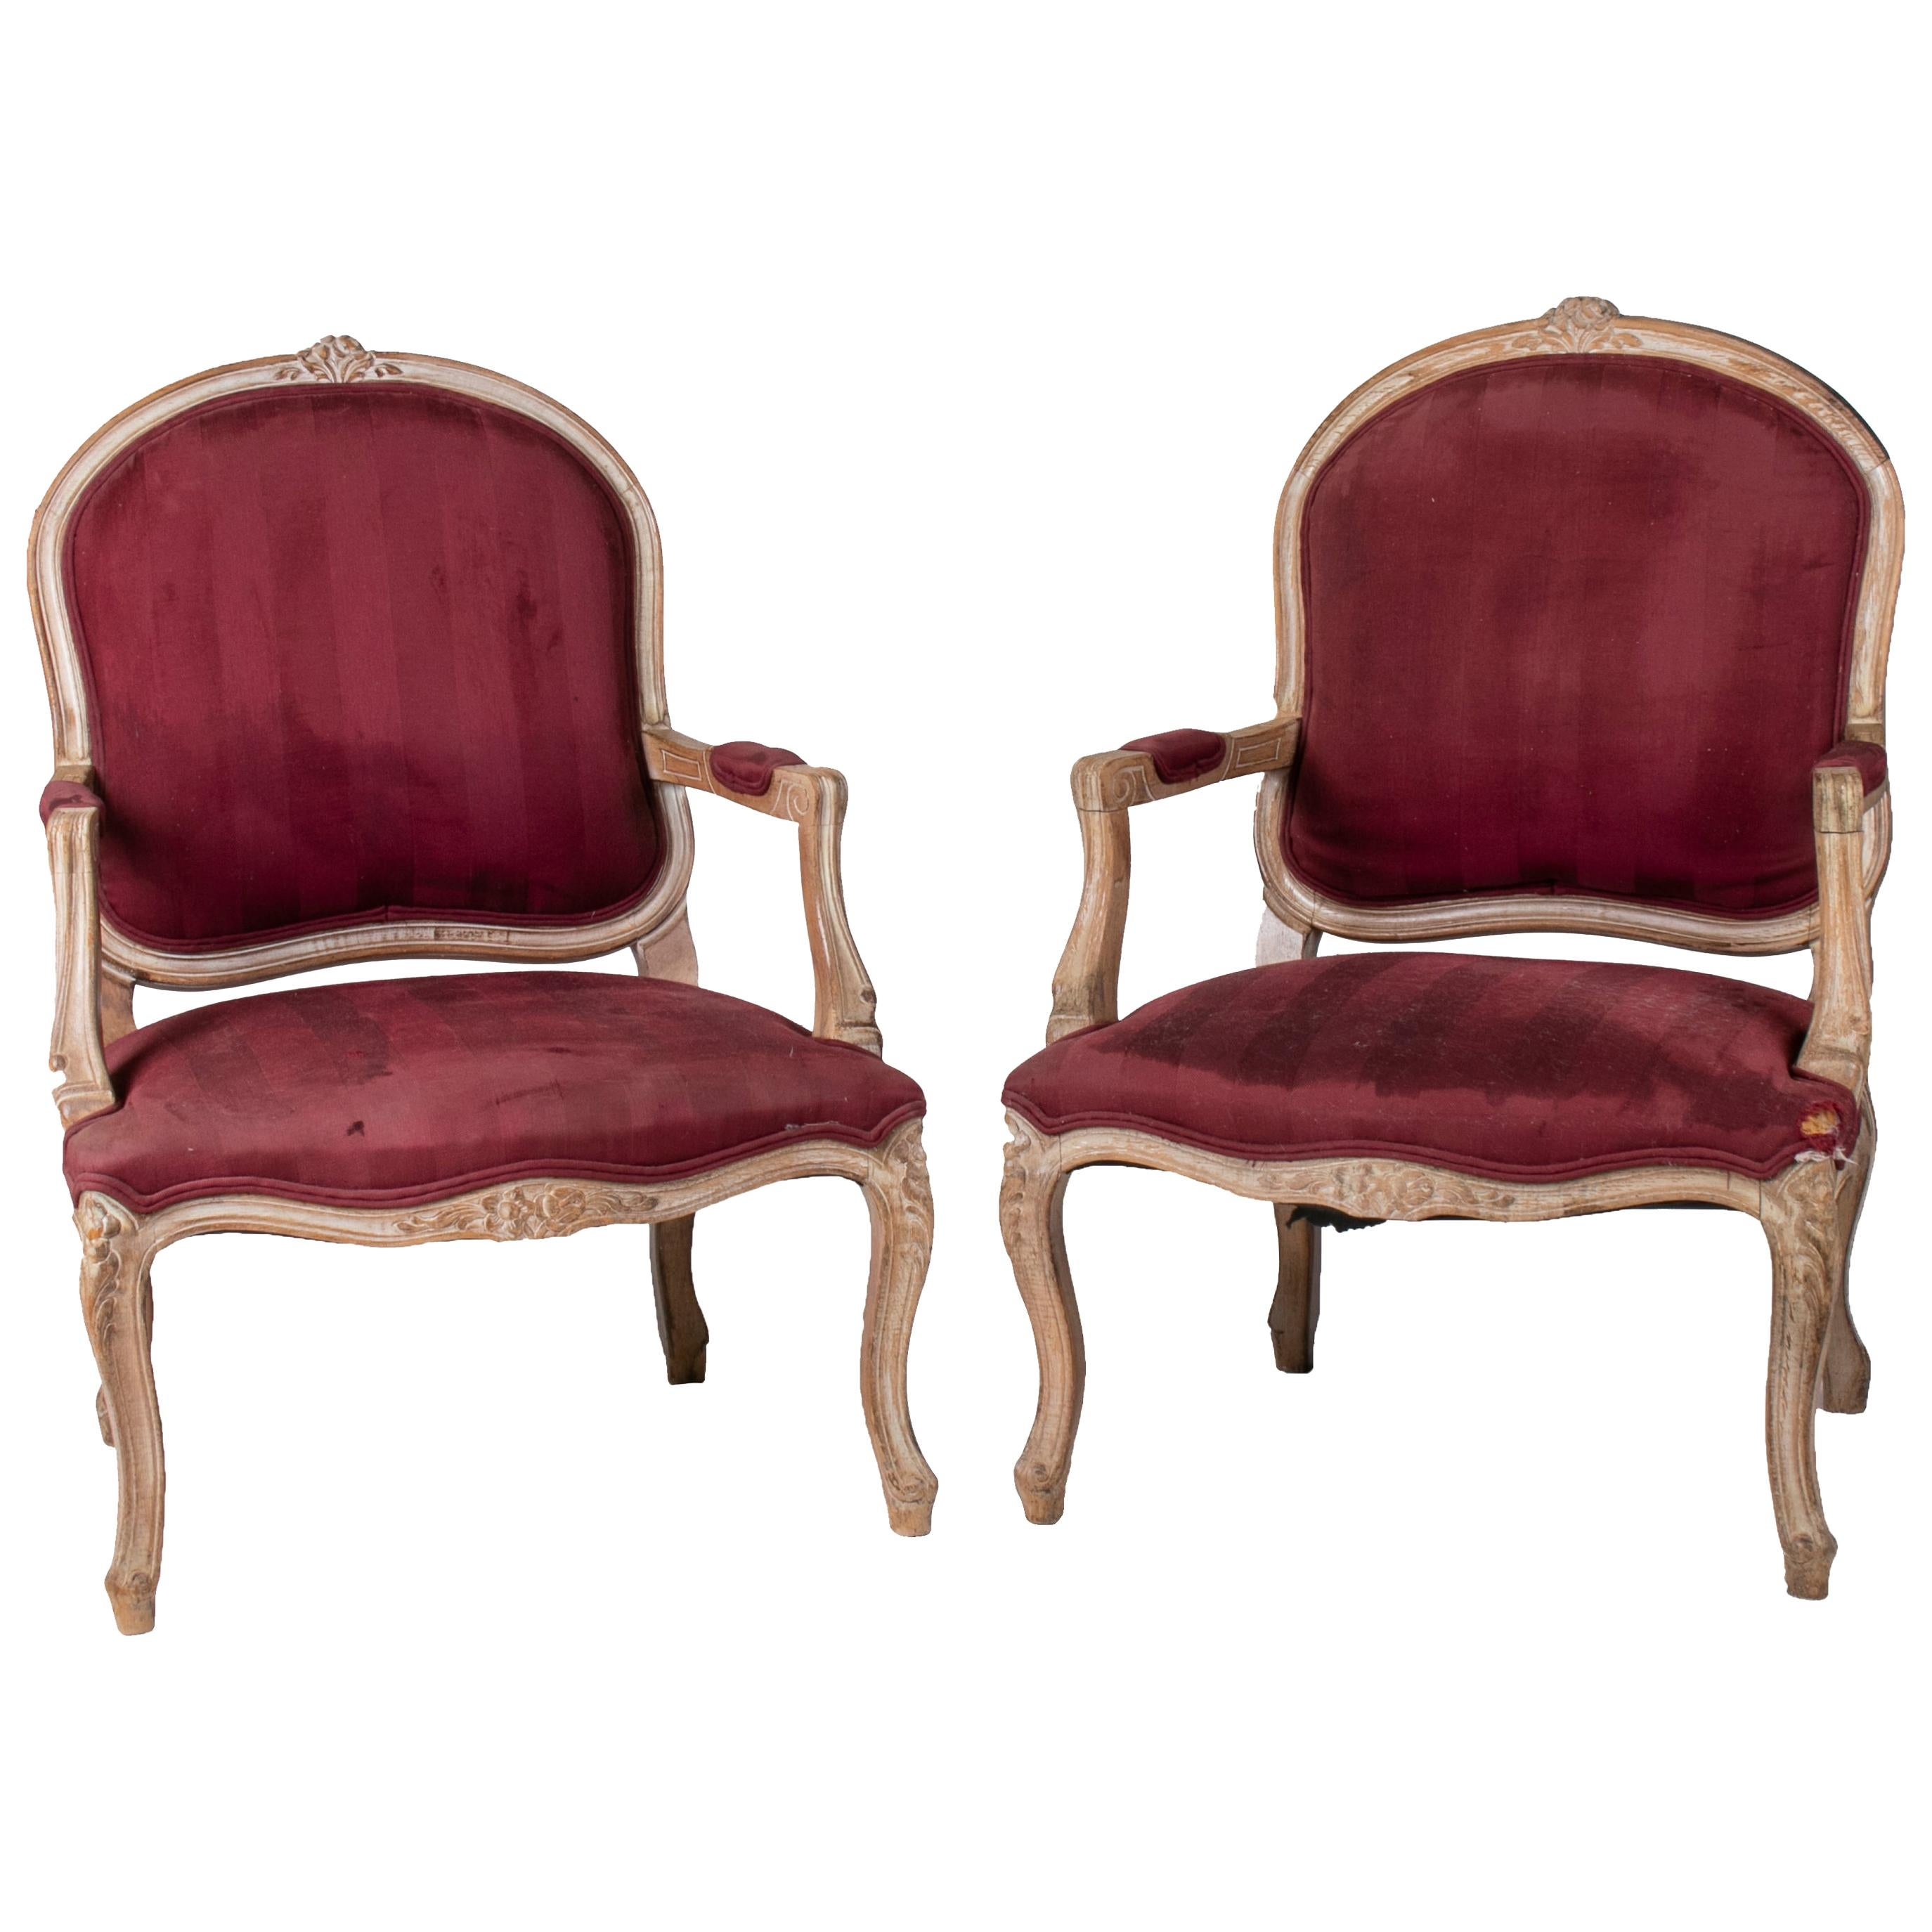 1980s Pair of French Red Upholstered Armchairs